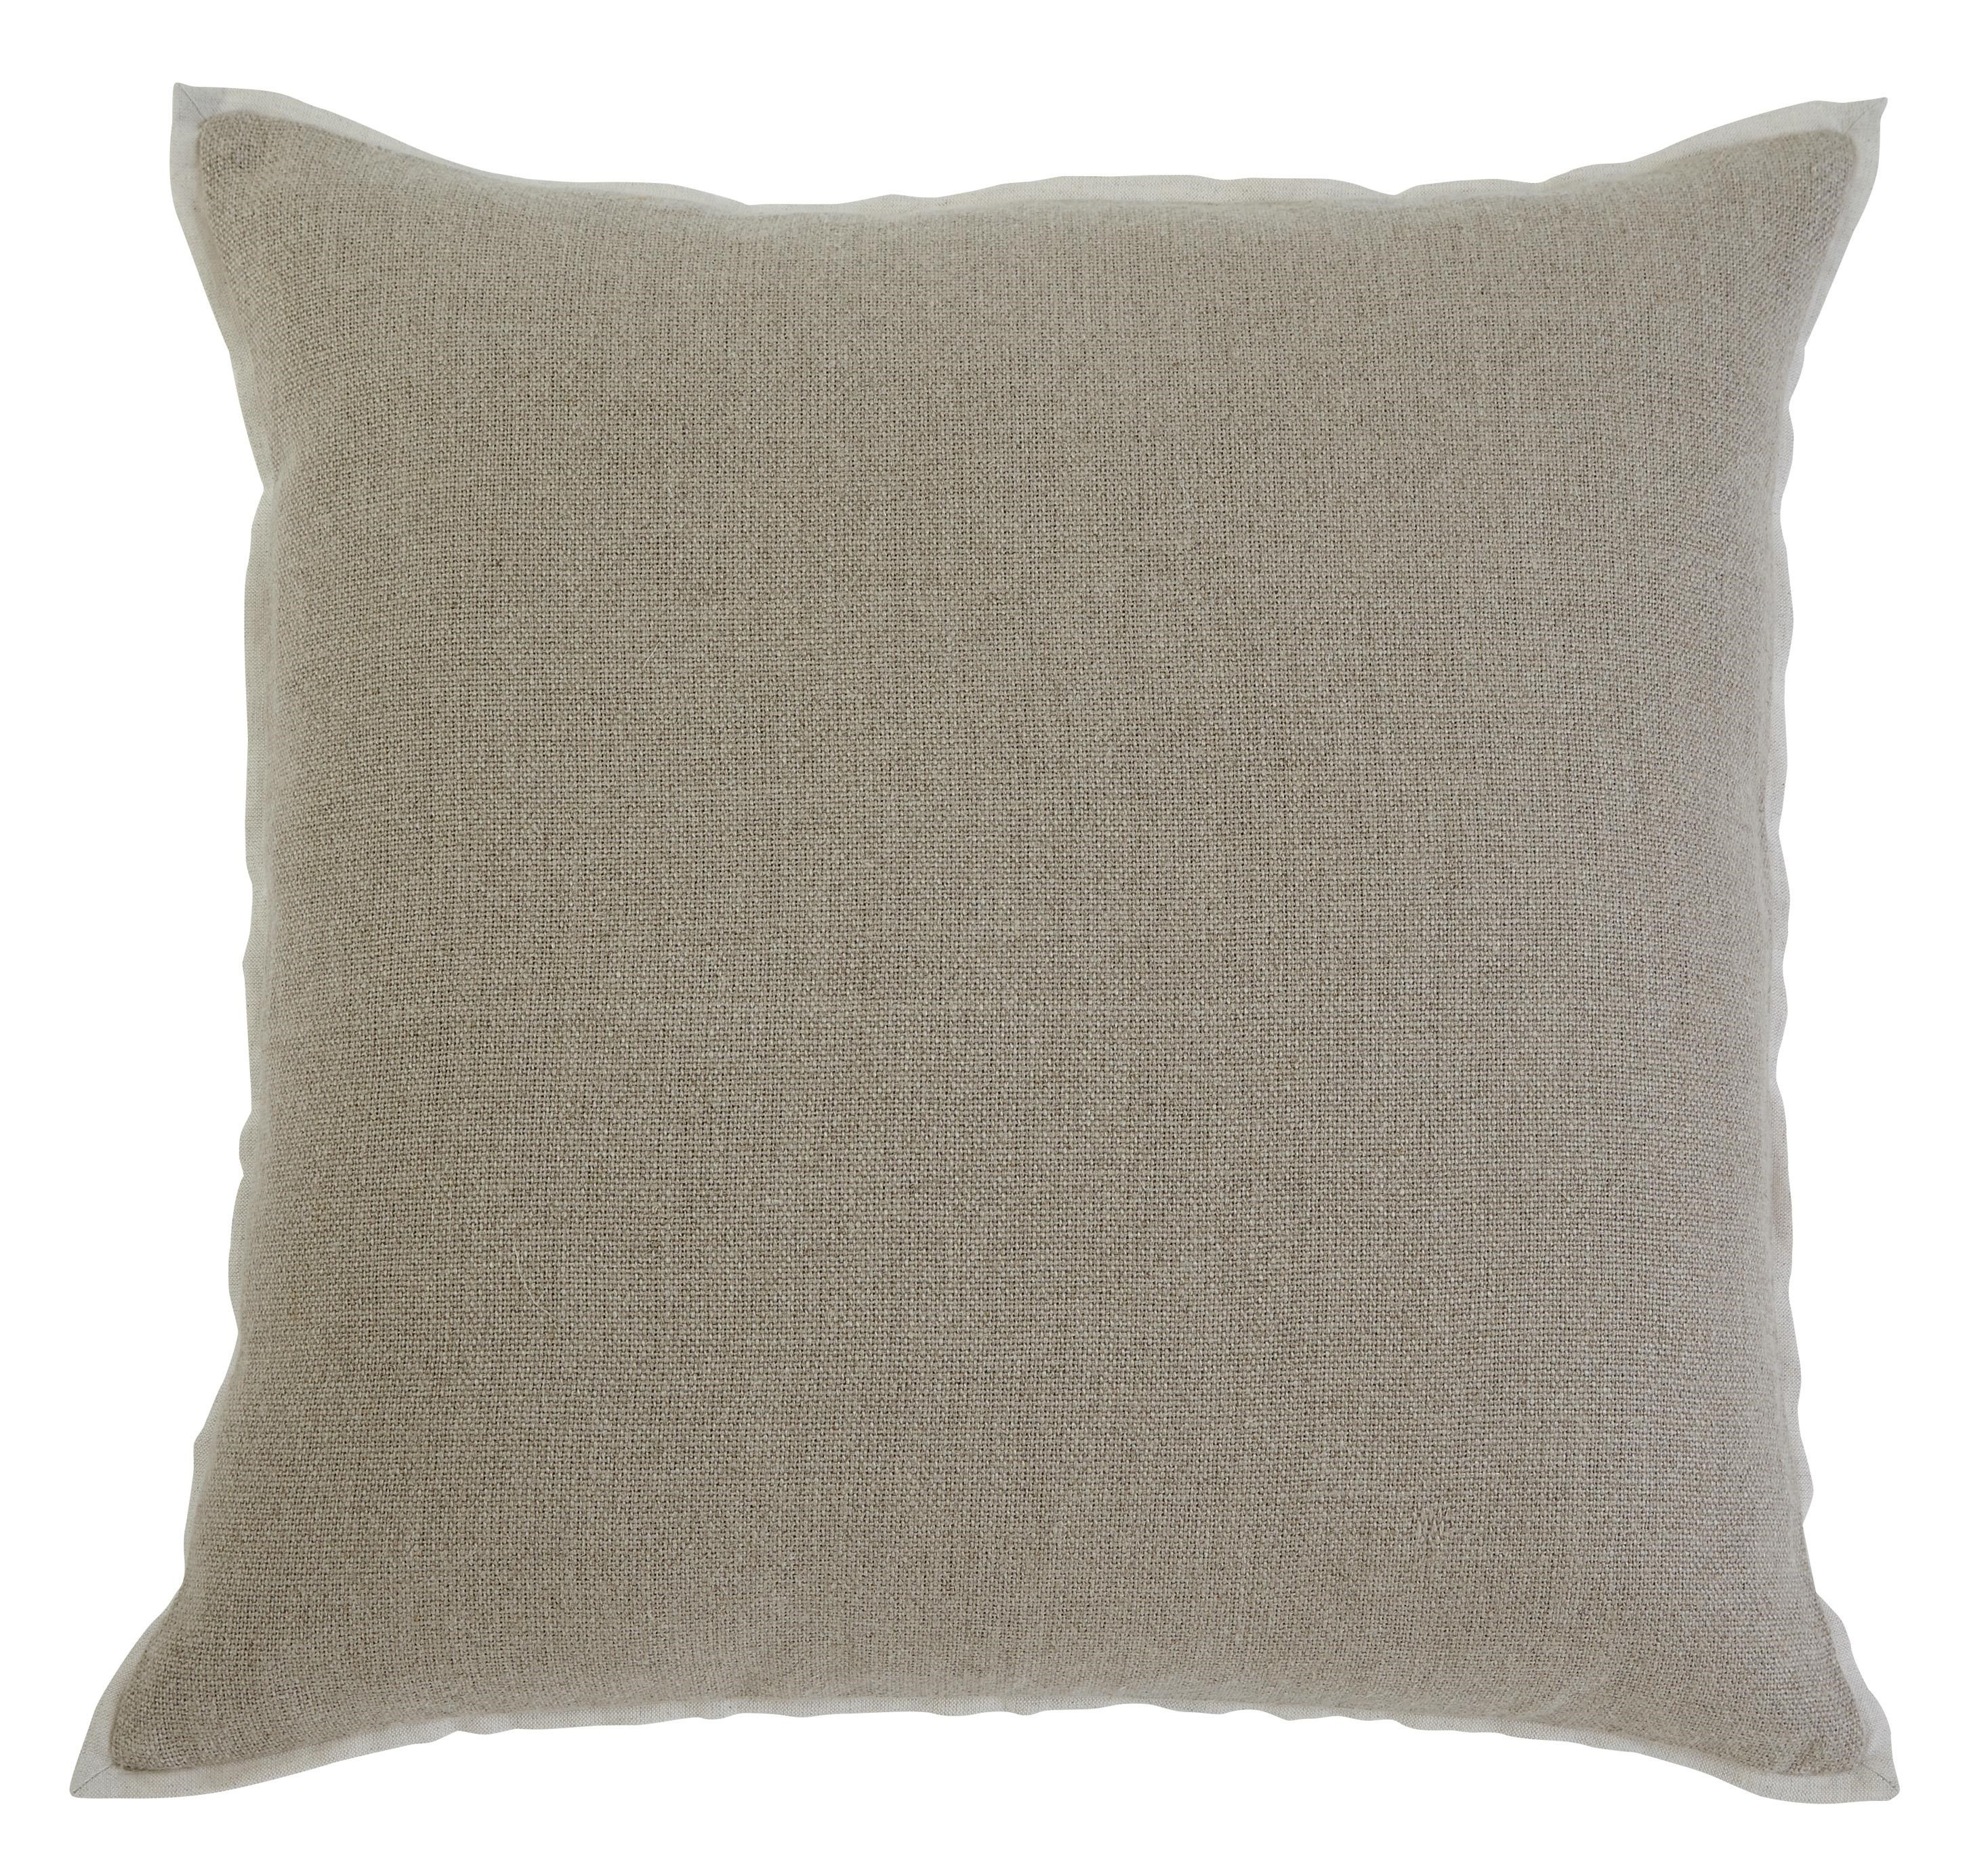 Signature Design by Ashley Furniture Pillows Solid Khaki